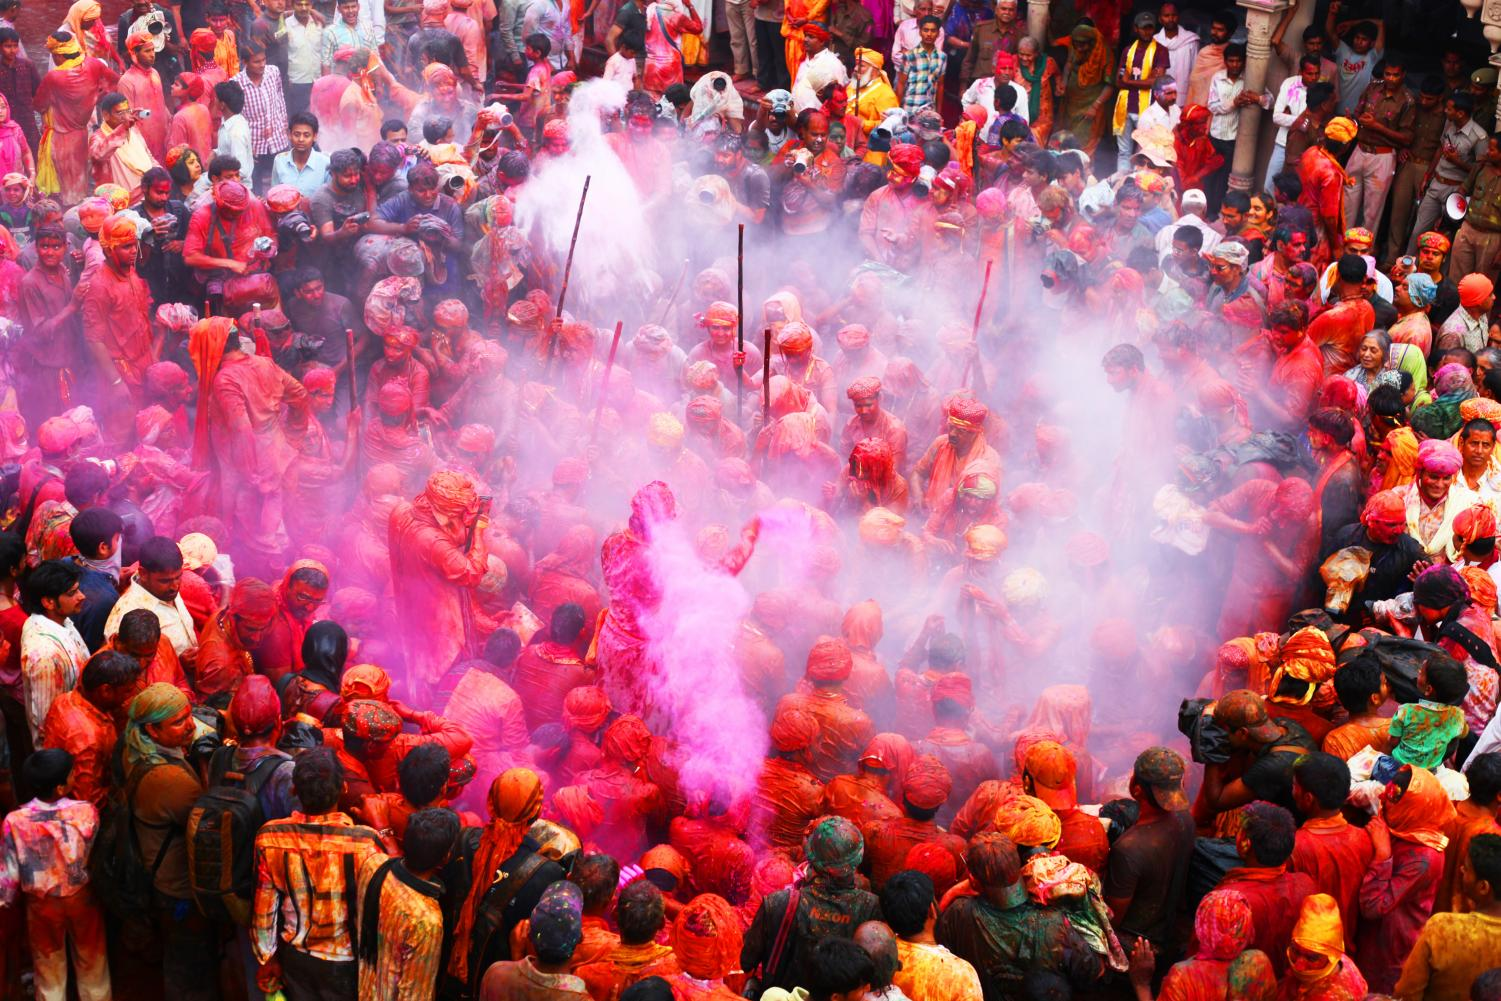 Holi is a Hindu spring festival, which can also be known as the